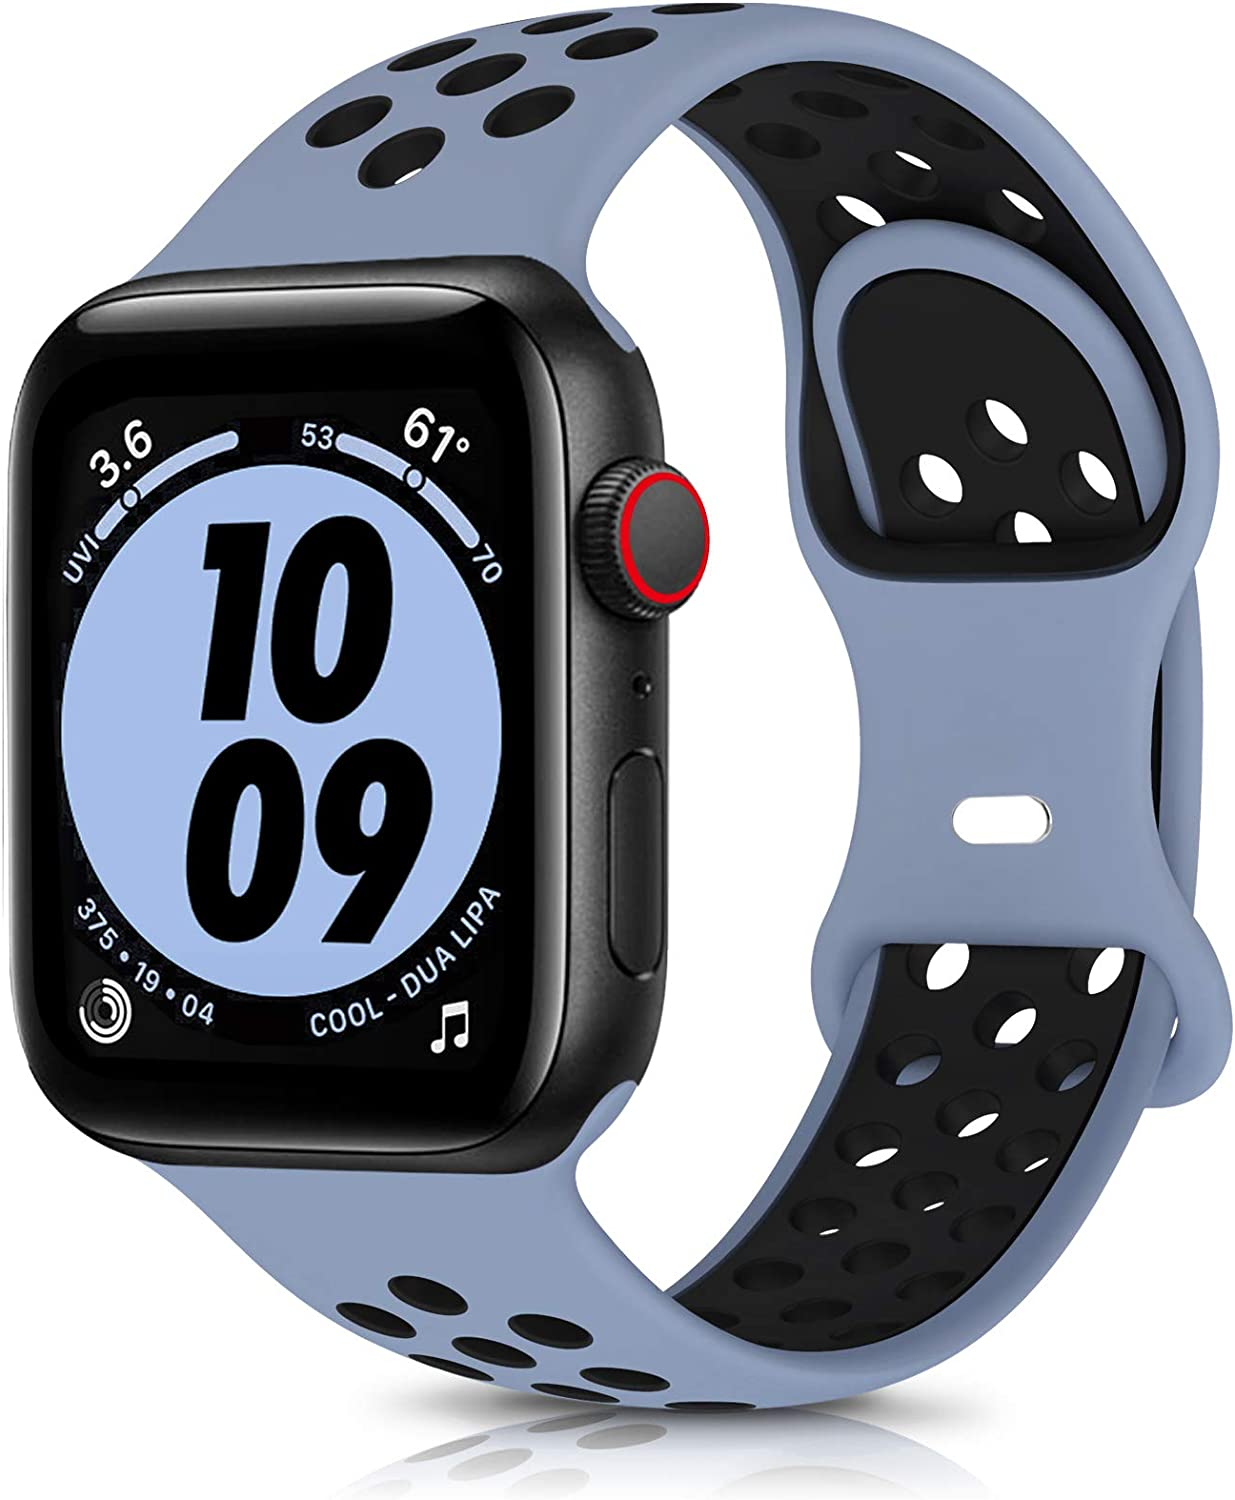 OYODSS Sport Bands Compatible with Apple Watch Band 38mm 40mm 42mm 44mm, Breathable Soft Silicone Replacement Wristband Compatible with iWatch Series 6 5 4 3 2 1 SE Women Men Obsidian Mist&Black